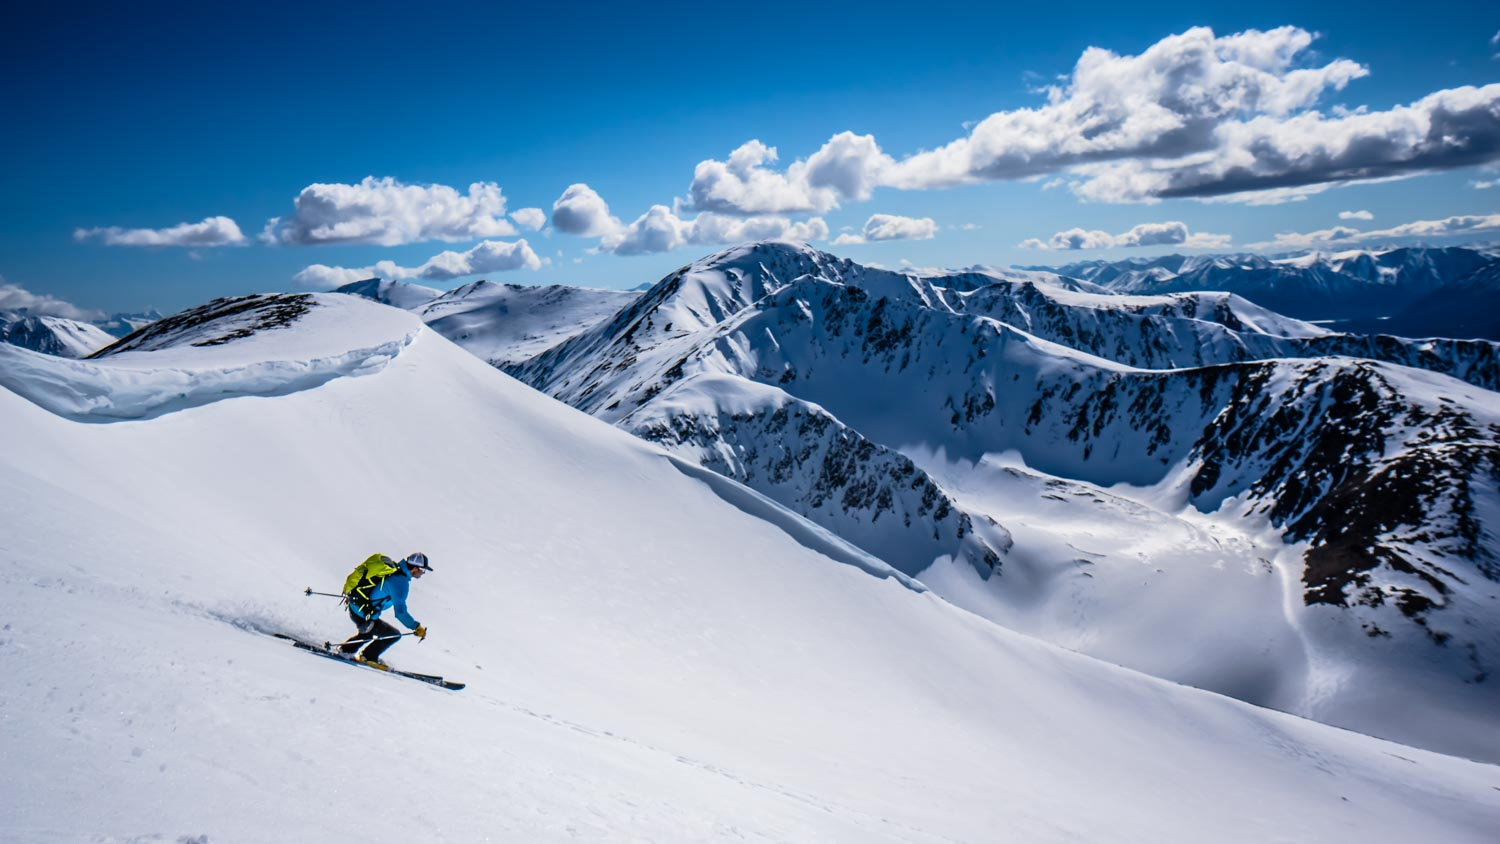 Joe test-driving the Synapse at Summit Lake, Kenai Mountains, Alaska. Photo by Dustin Leclerc.